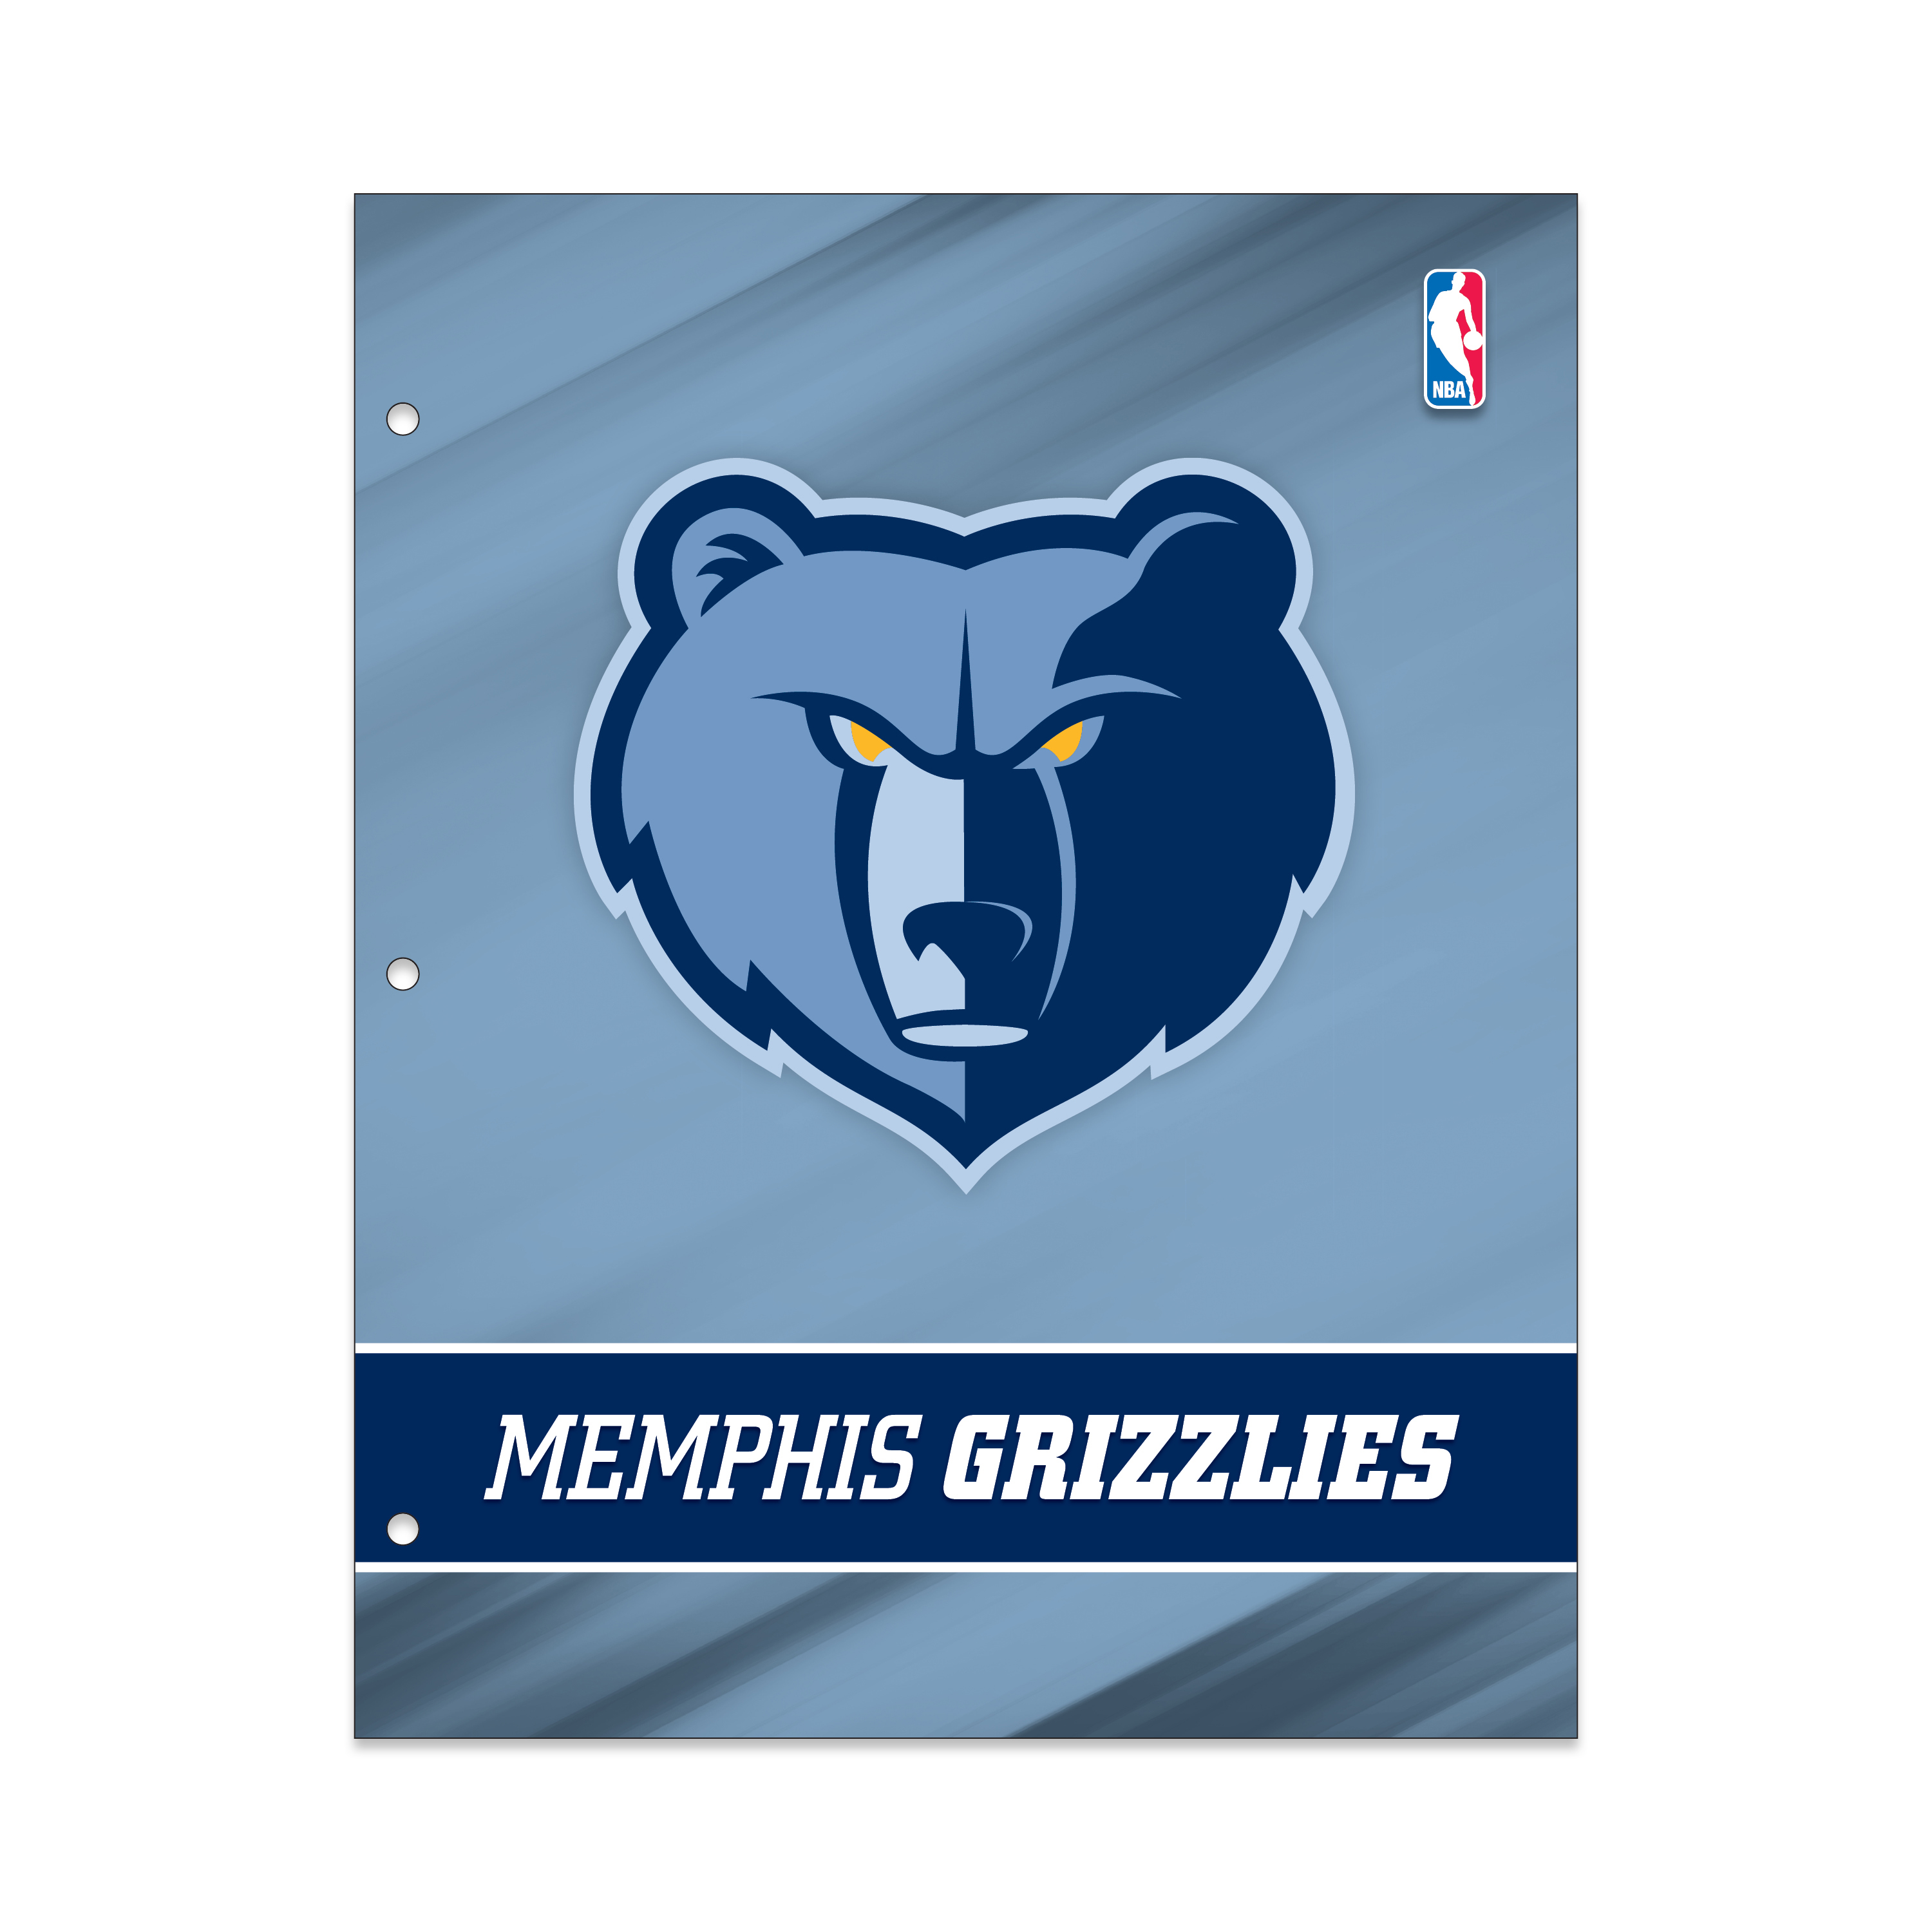 NBA Memphis Grizzlies 2 Pocket Portfolio, Three Hole Punched, Fits Letter Size